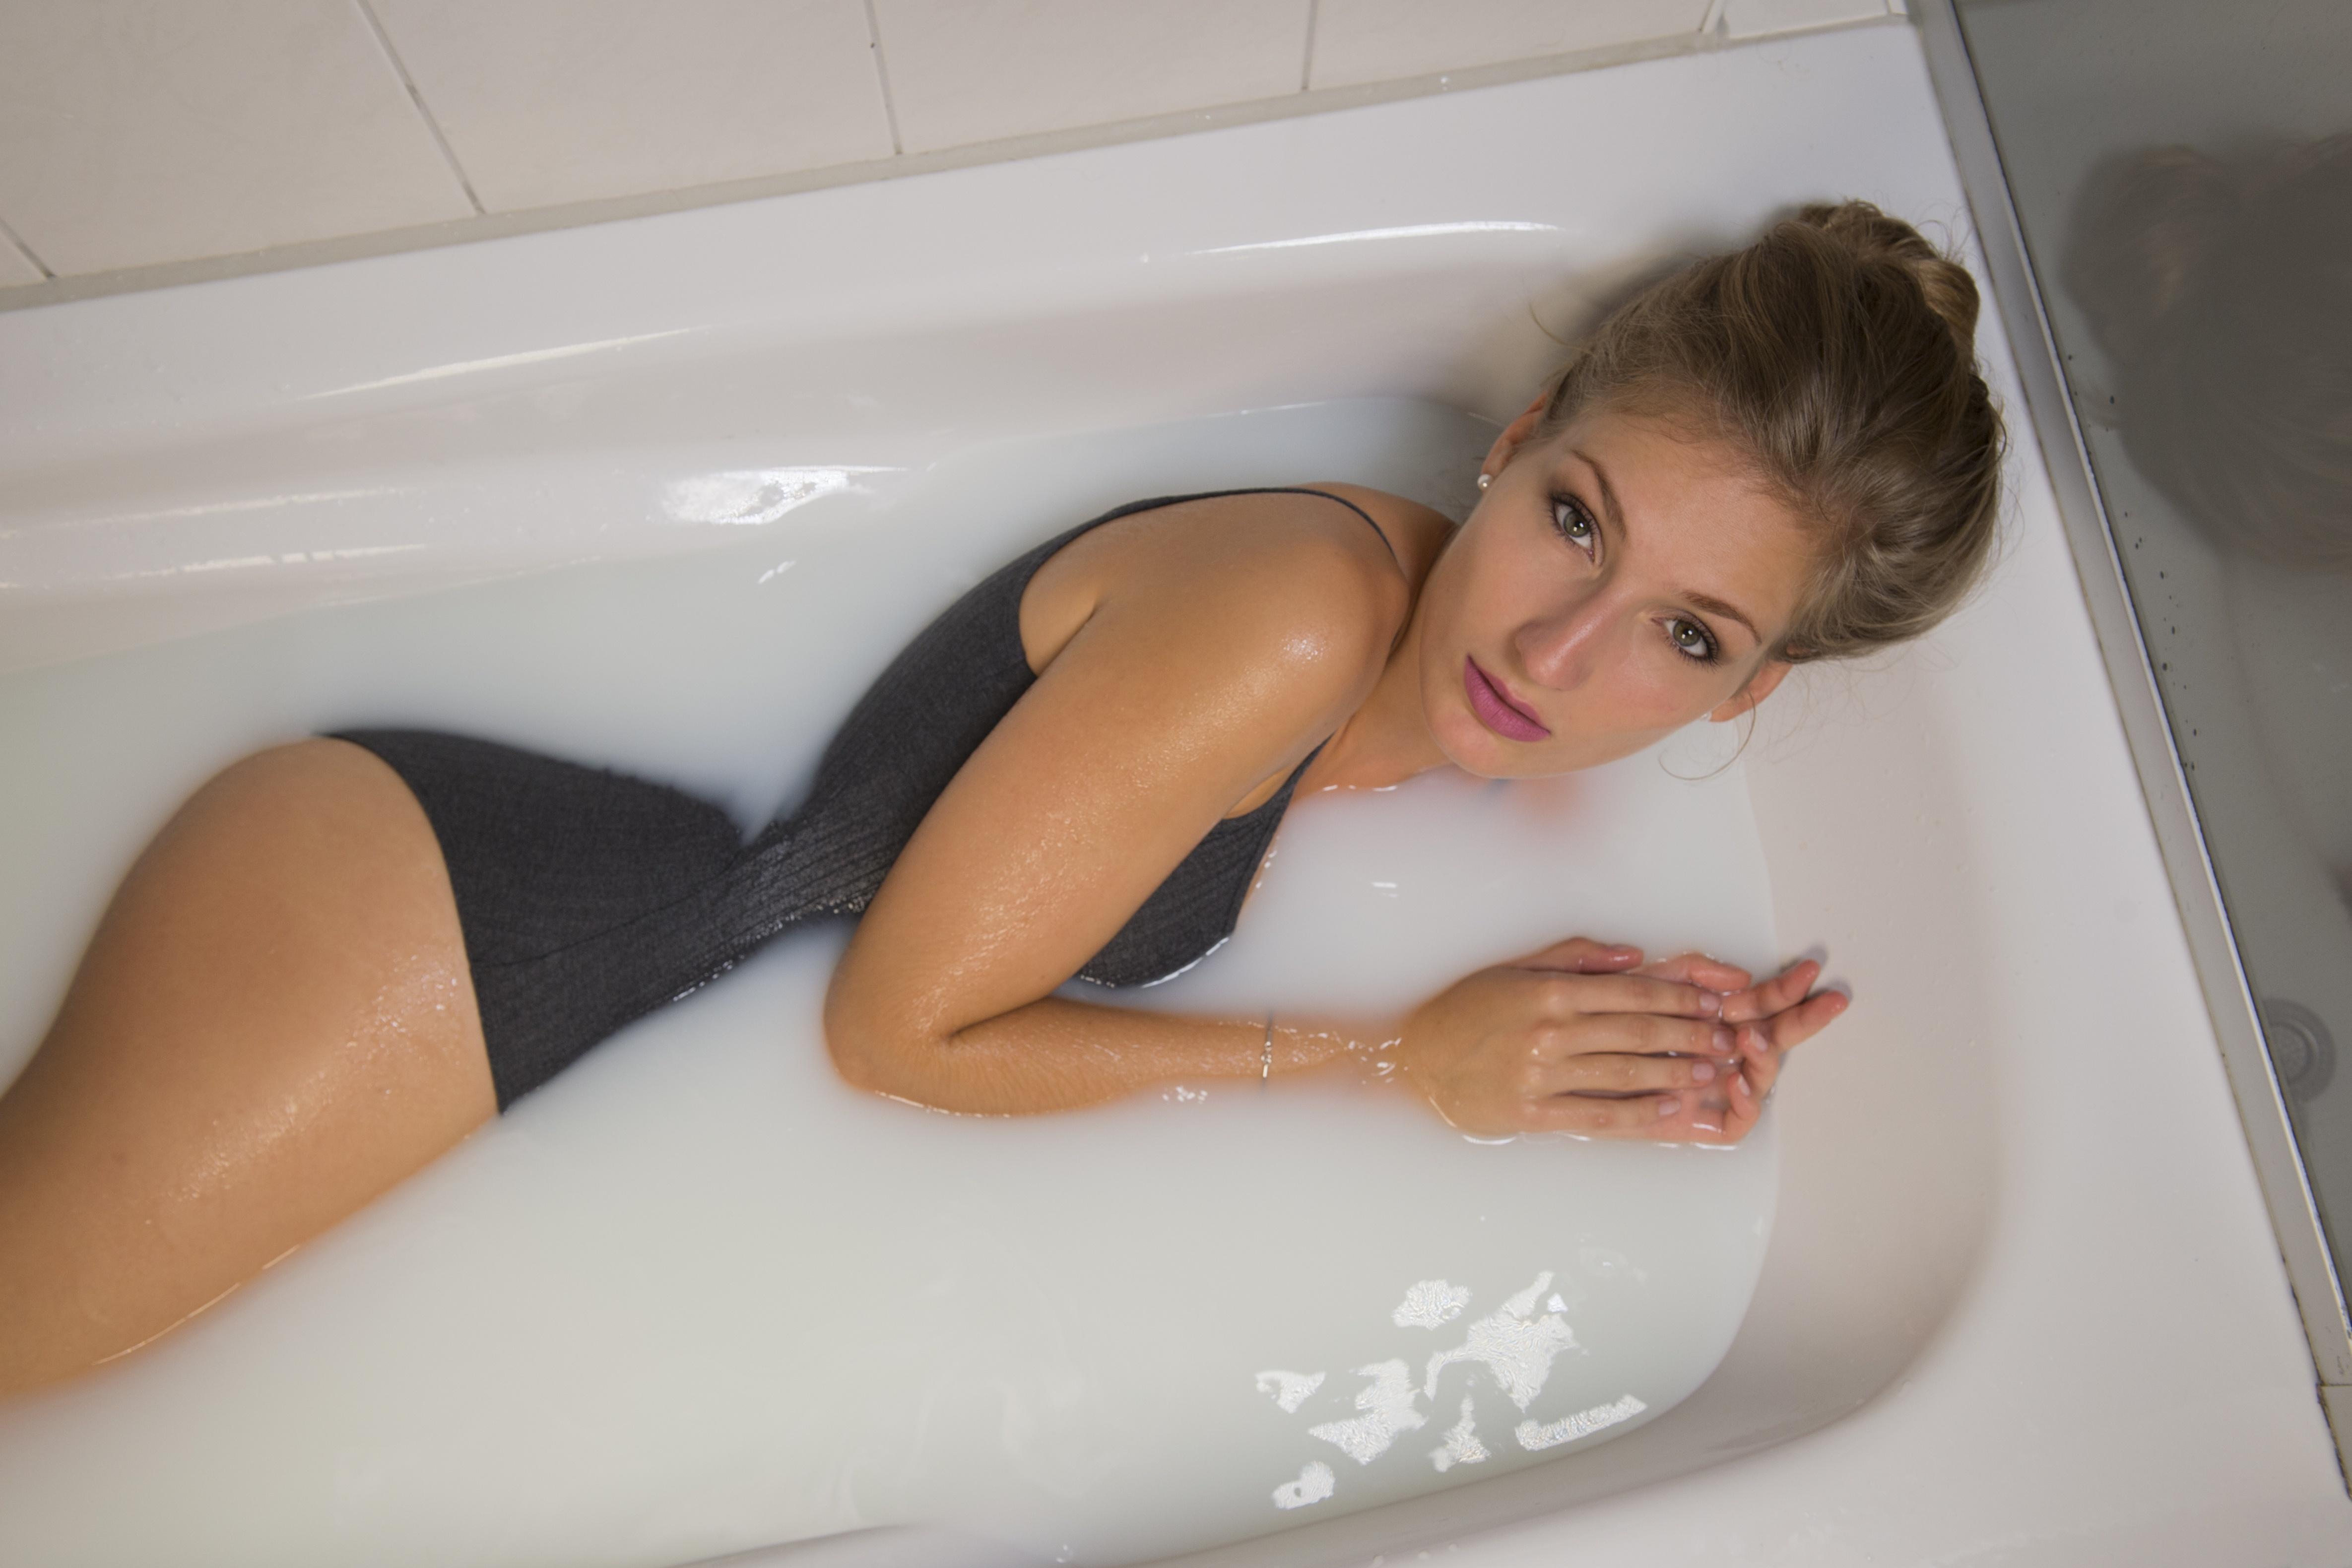 Hot Teenage Girl Naked In Bath